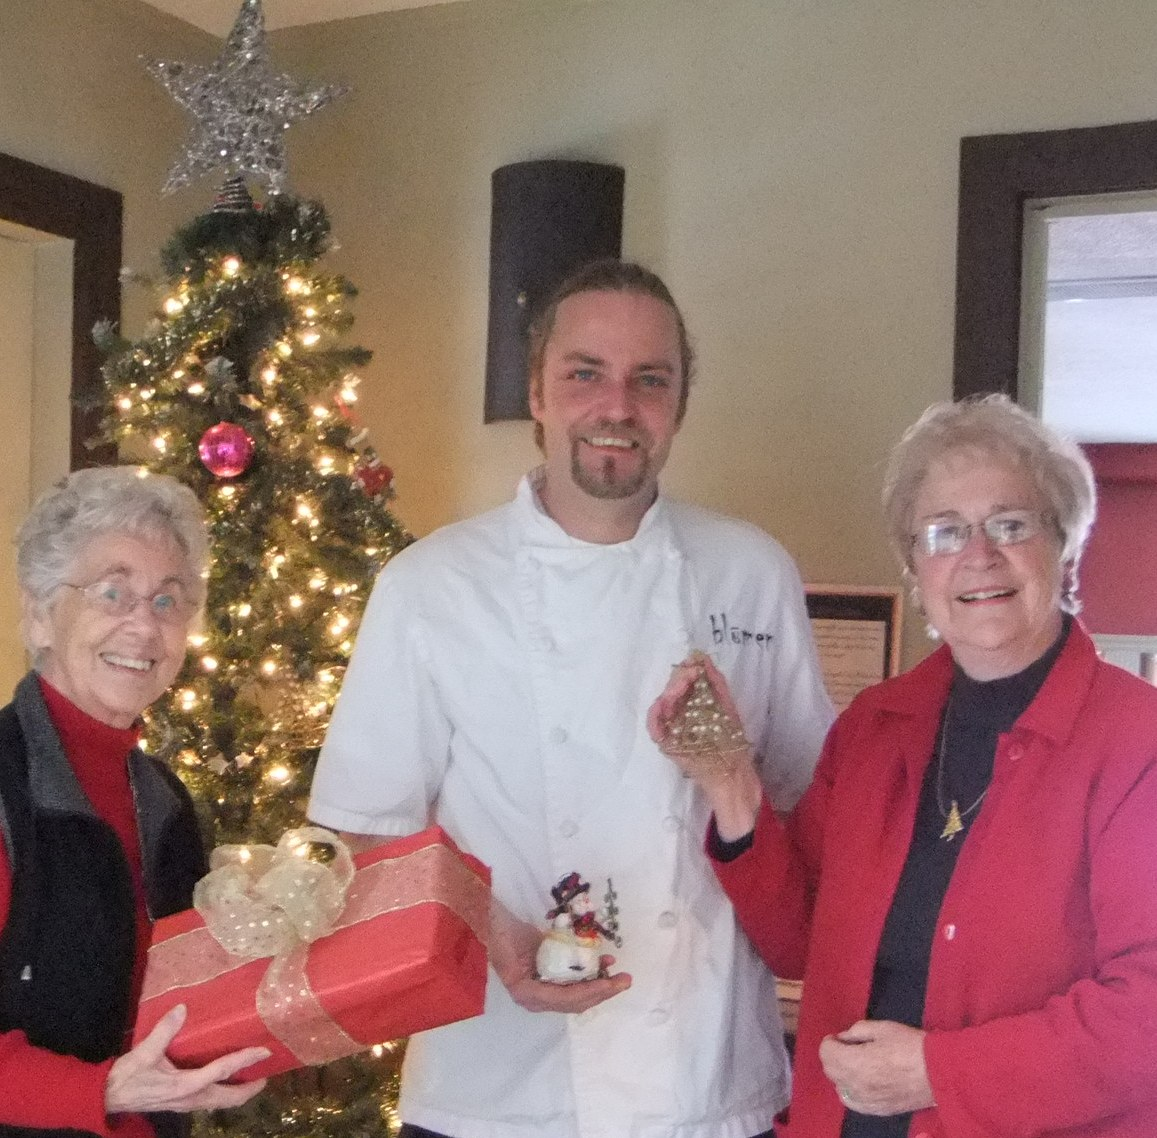 L-R Maureen Finnegan, Andreas Feller, and Edith Morash prepare Community Care's Christmas Memory Tree at Blumen Garden Bistro. second shot